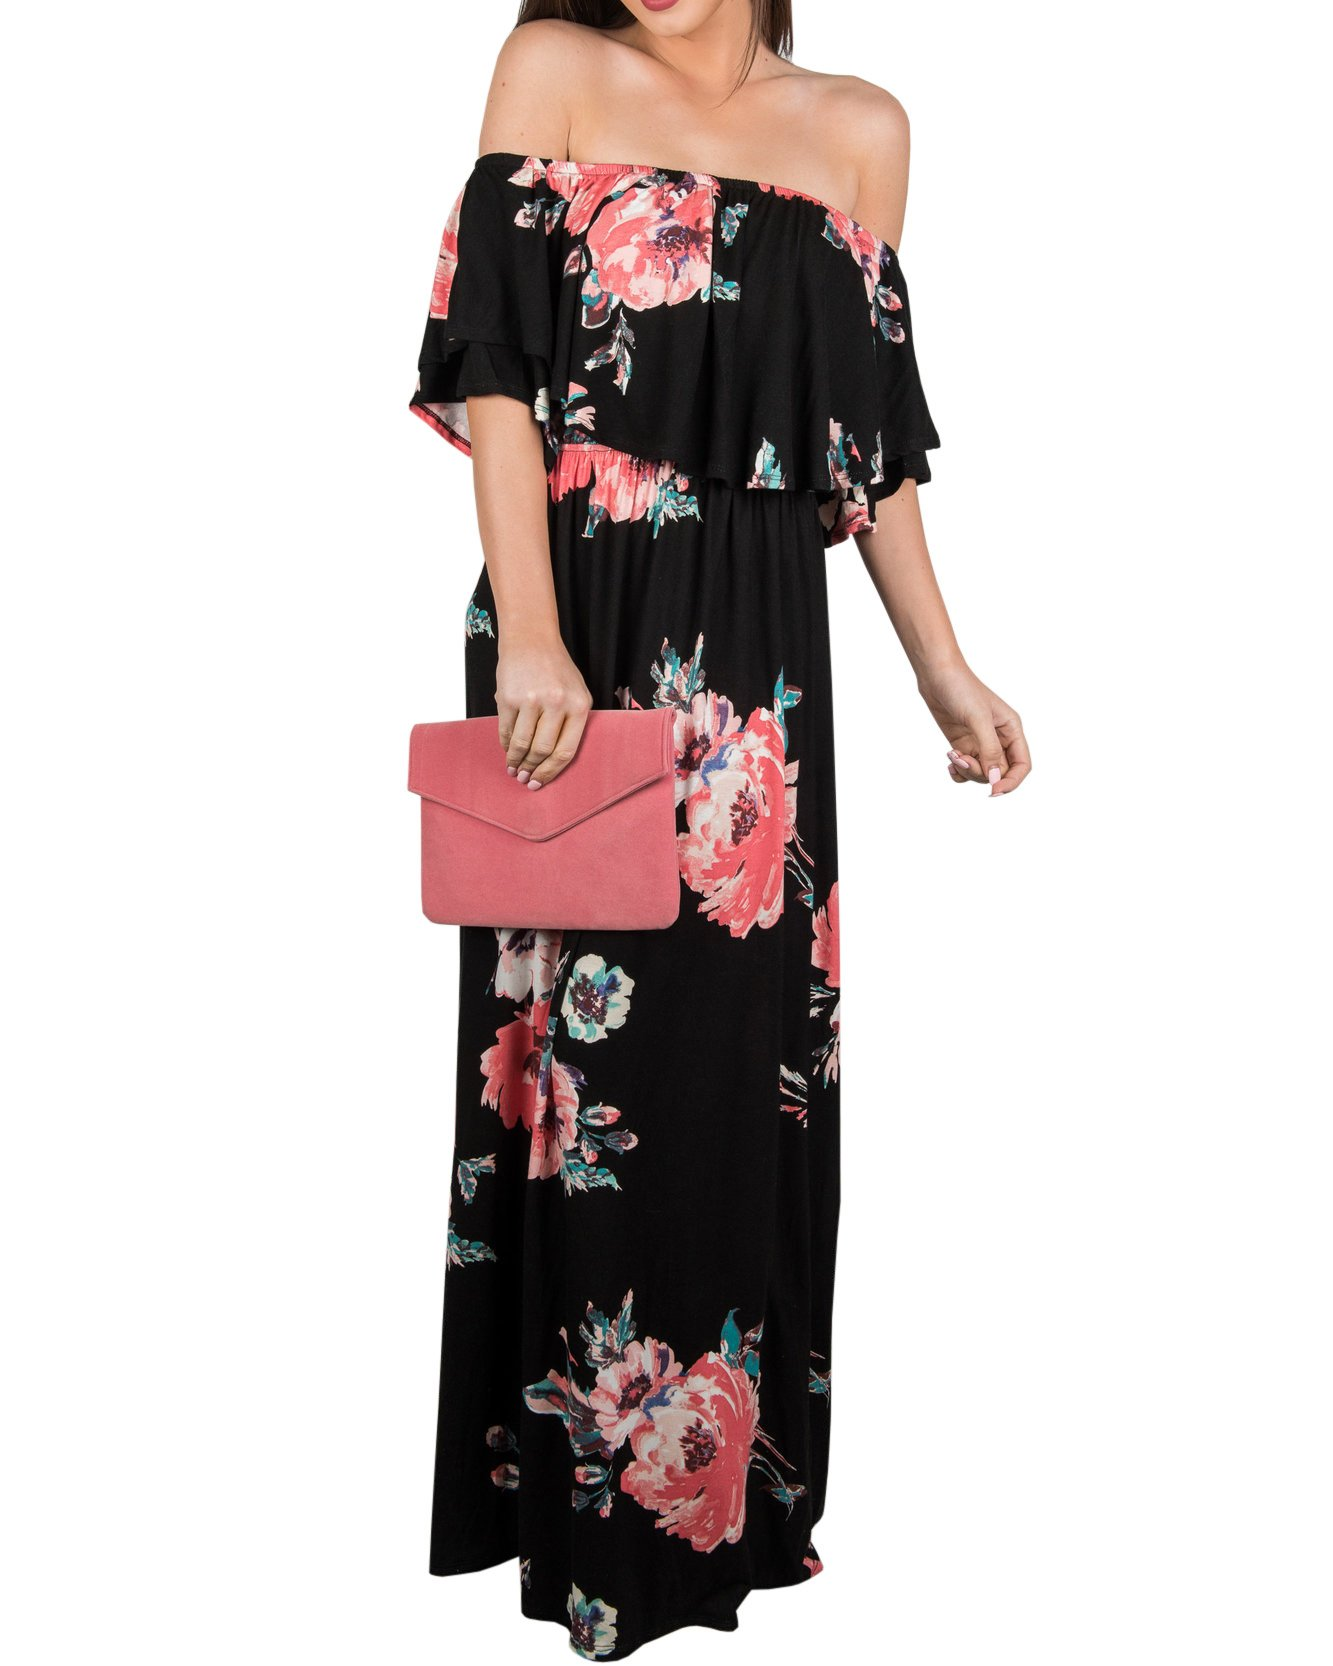 Chuanqi Womens Summer Floral Off The Shoulder Dresses Causal Flowy Beach Long Maxi Dress by Chuanqi